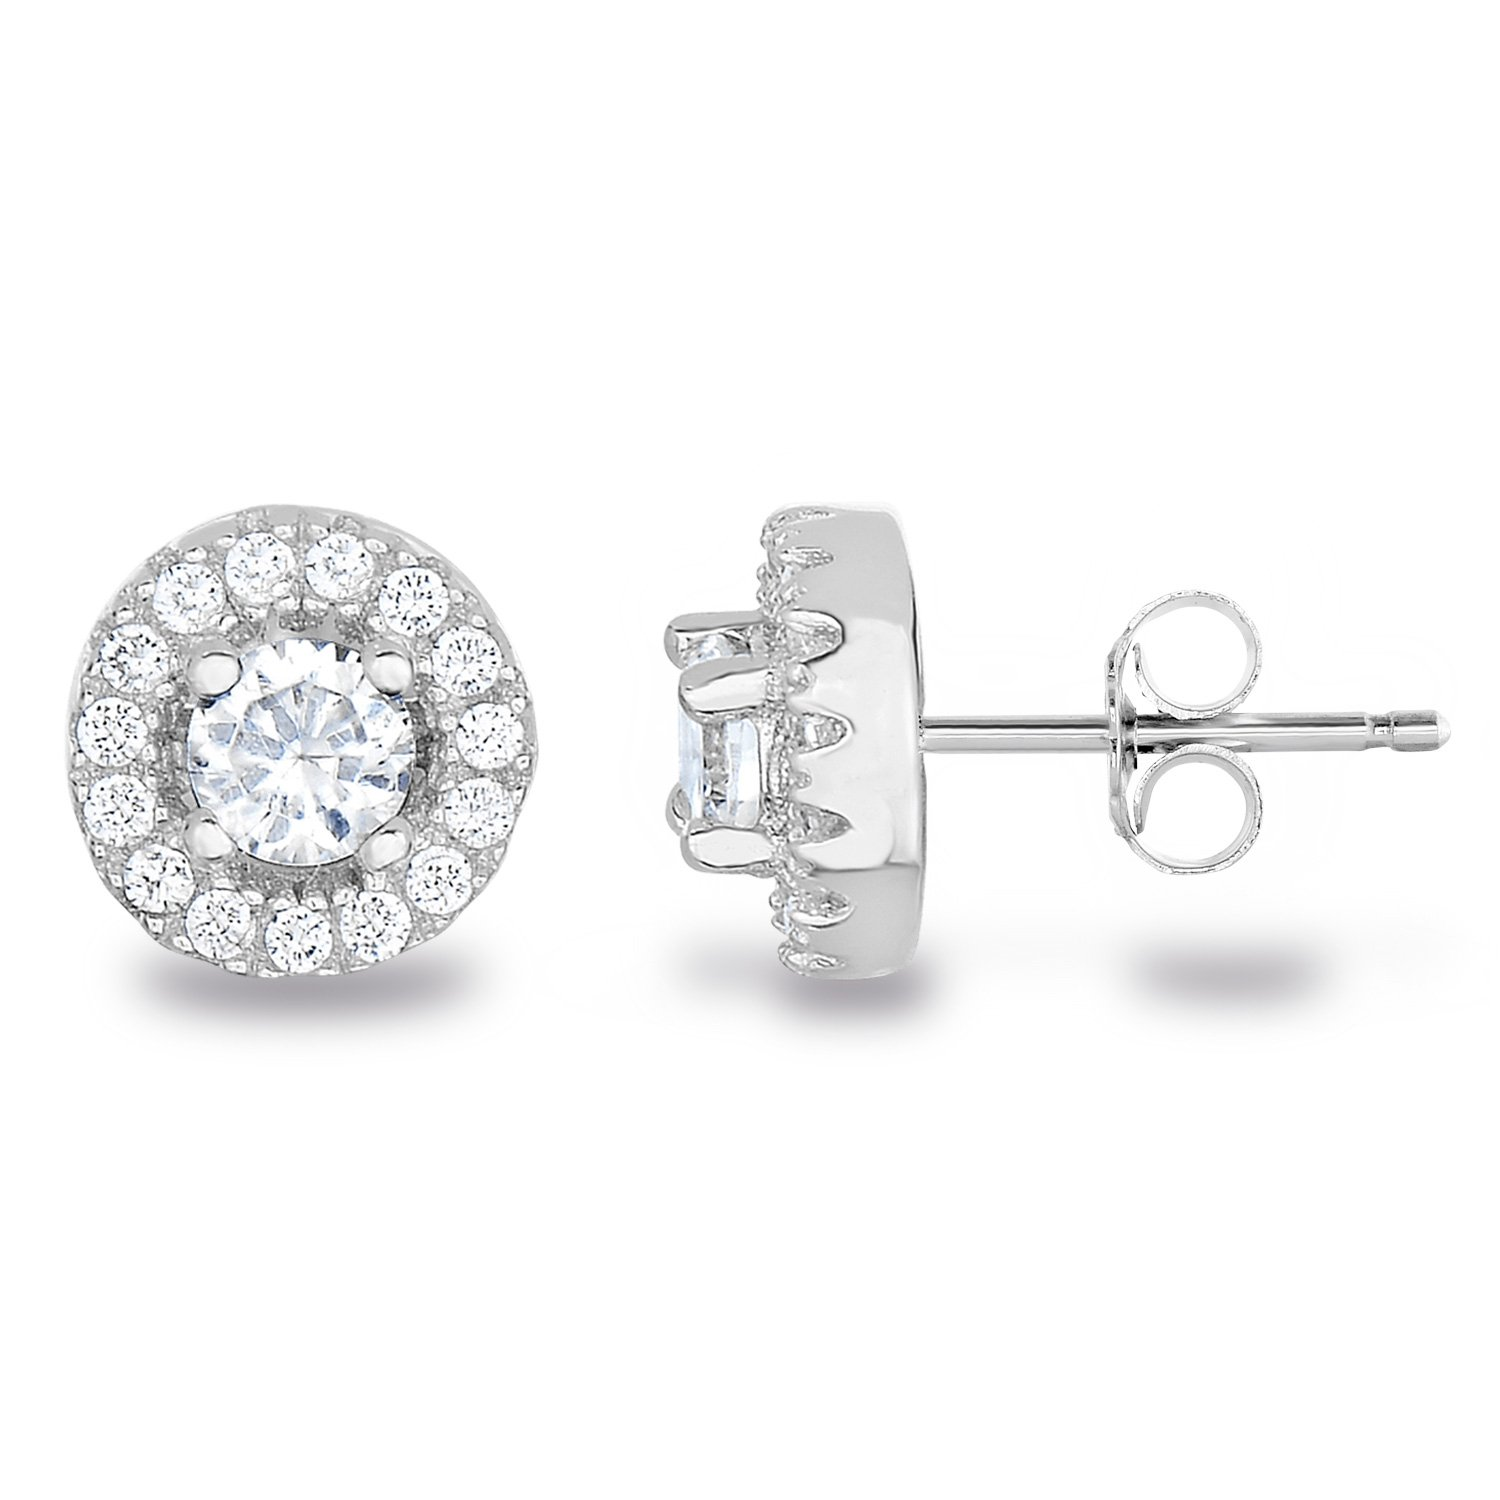 Rhodium Plated Sterling Silver Cubic Zirconia Halo Stud Earrings, Center Stone 4mm